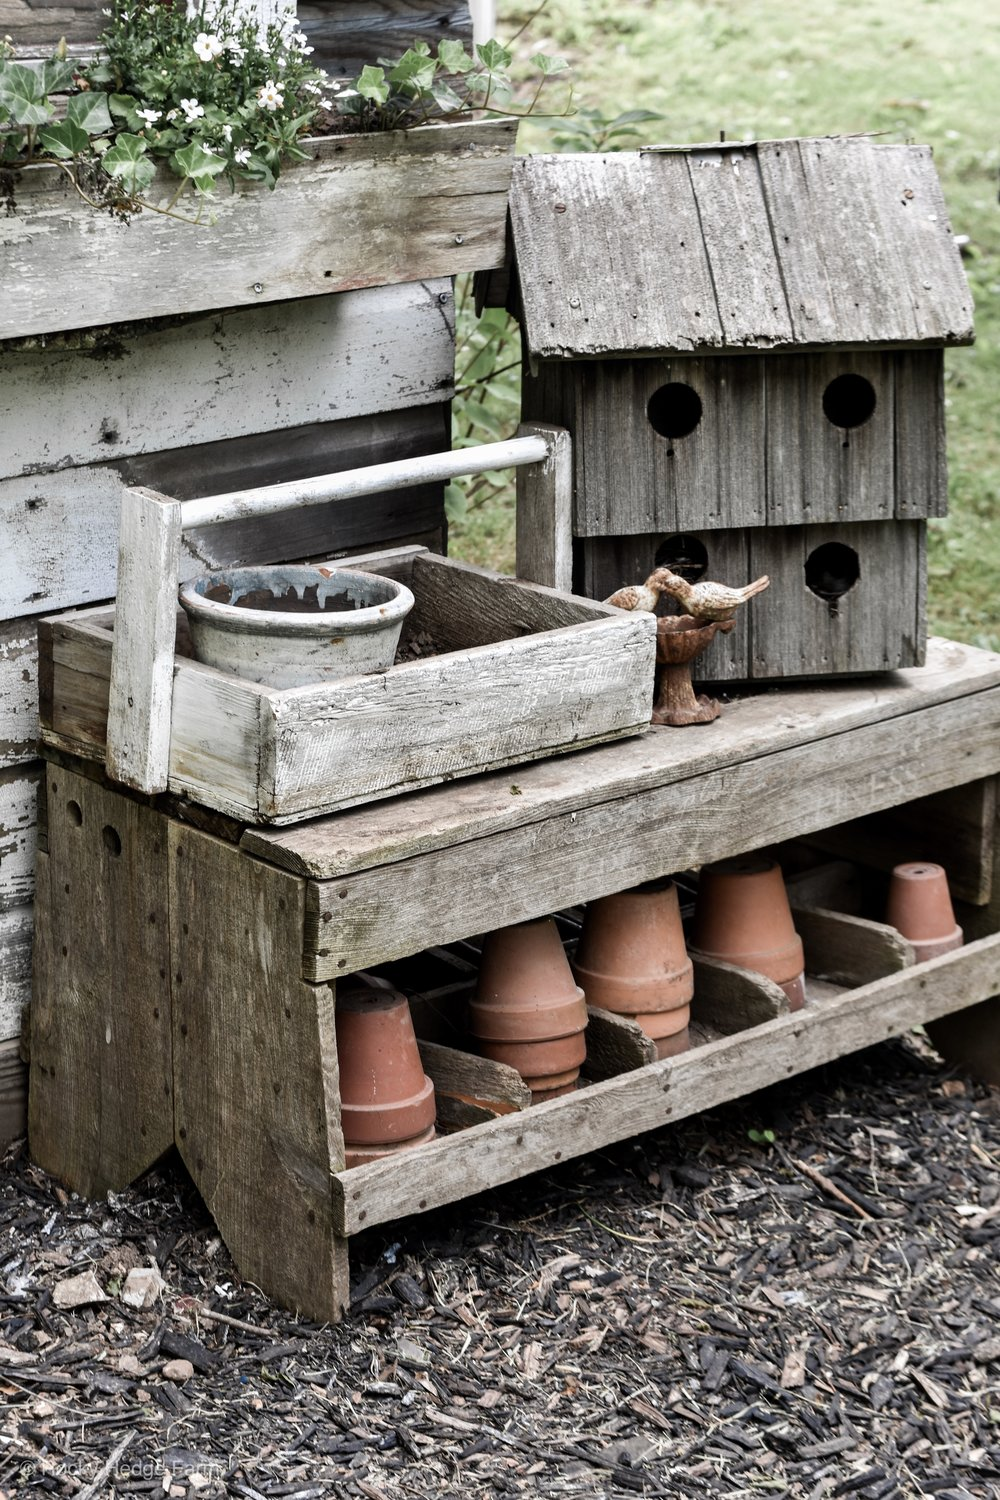 Rustic garden decor old bench and clay terra cotta pots | Rocky Hedge Farm